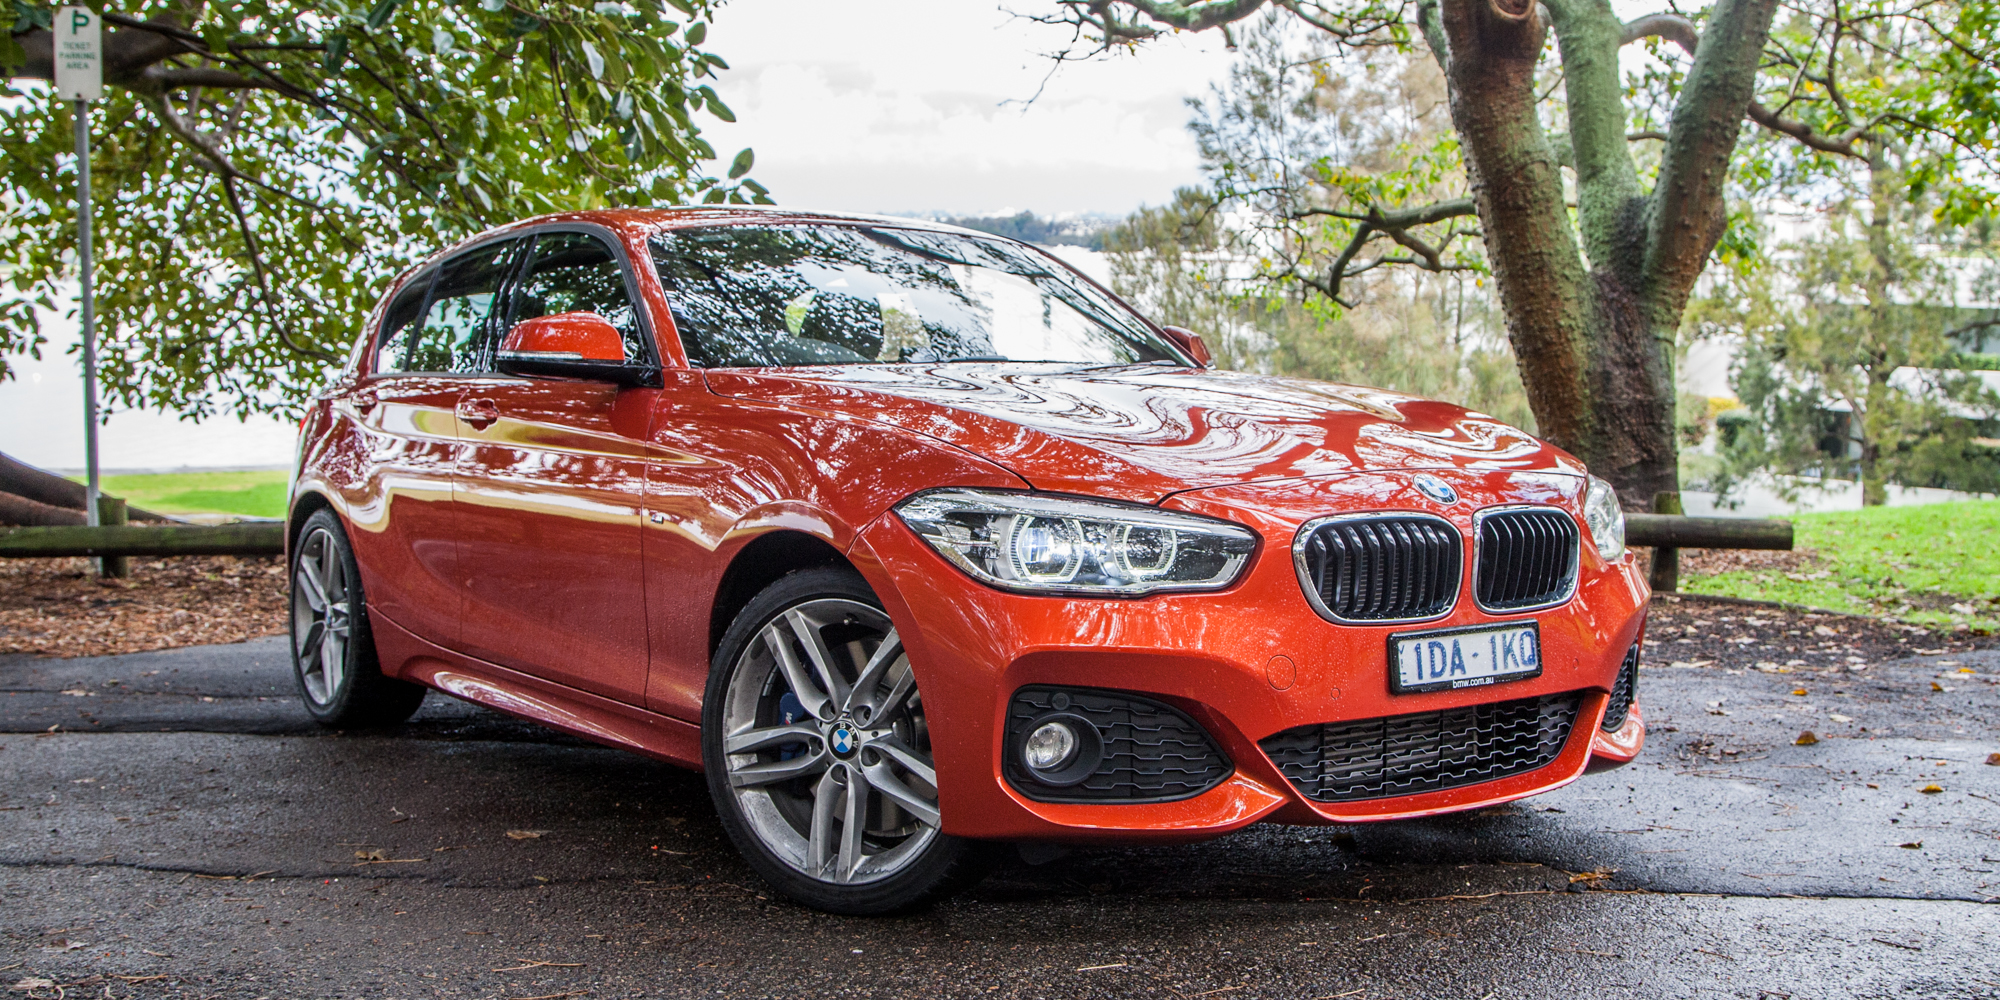 2015 Bmw 125i Orange (Photo 9 of 15)